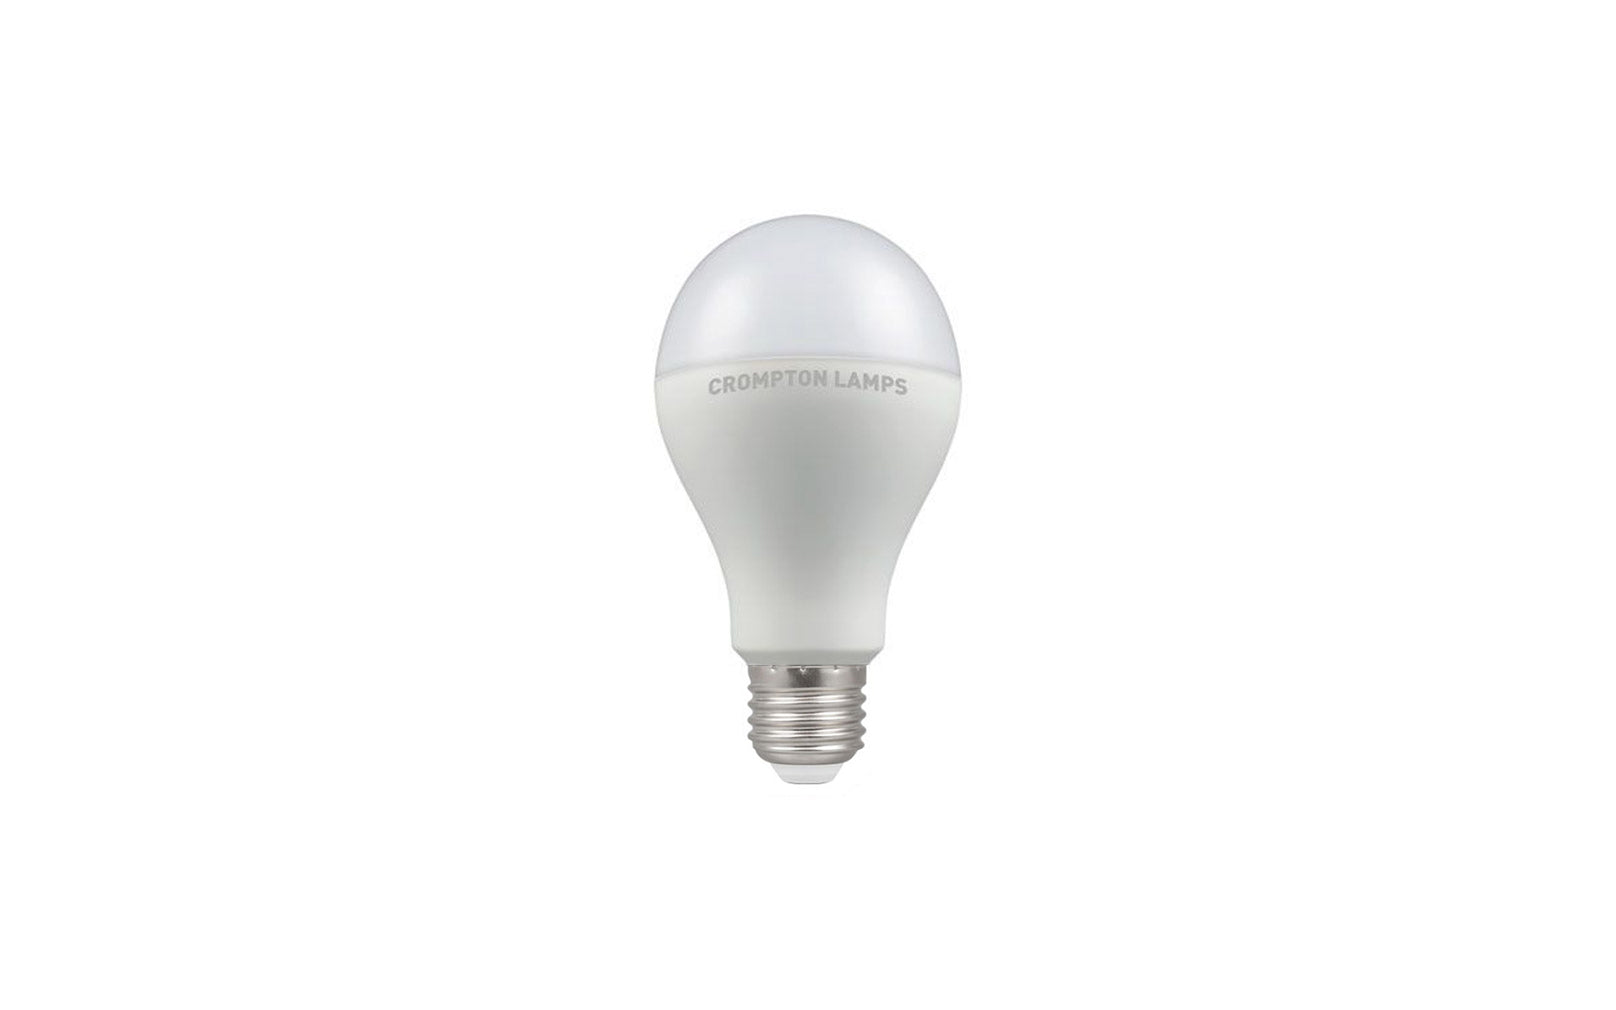 Crompton LED Dimmable Light Bulb